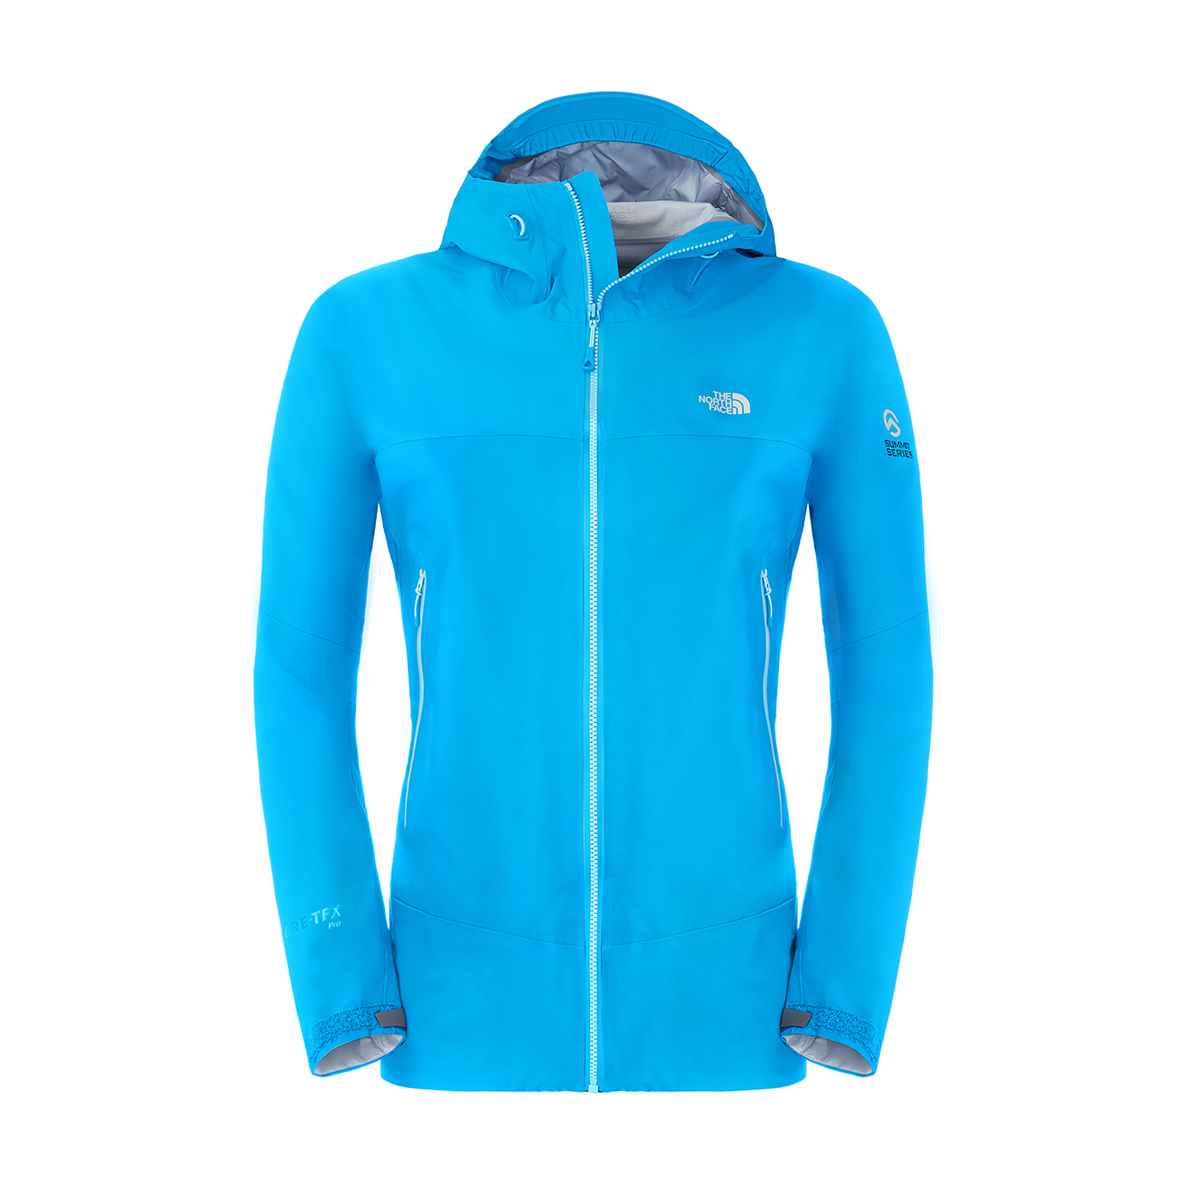 6b0e8cc369 The North Face Point Five NG Jacket (Woman) | Technical Jackets ...